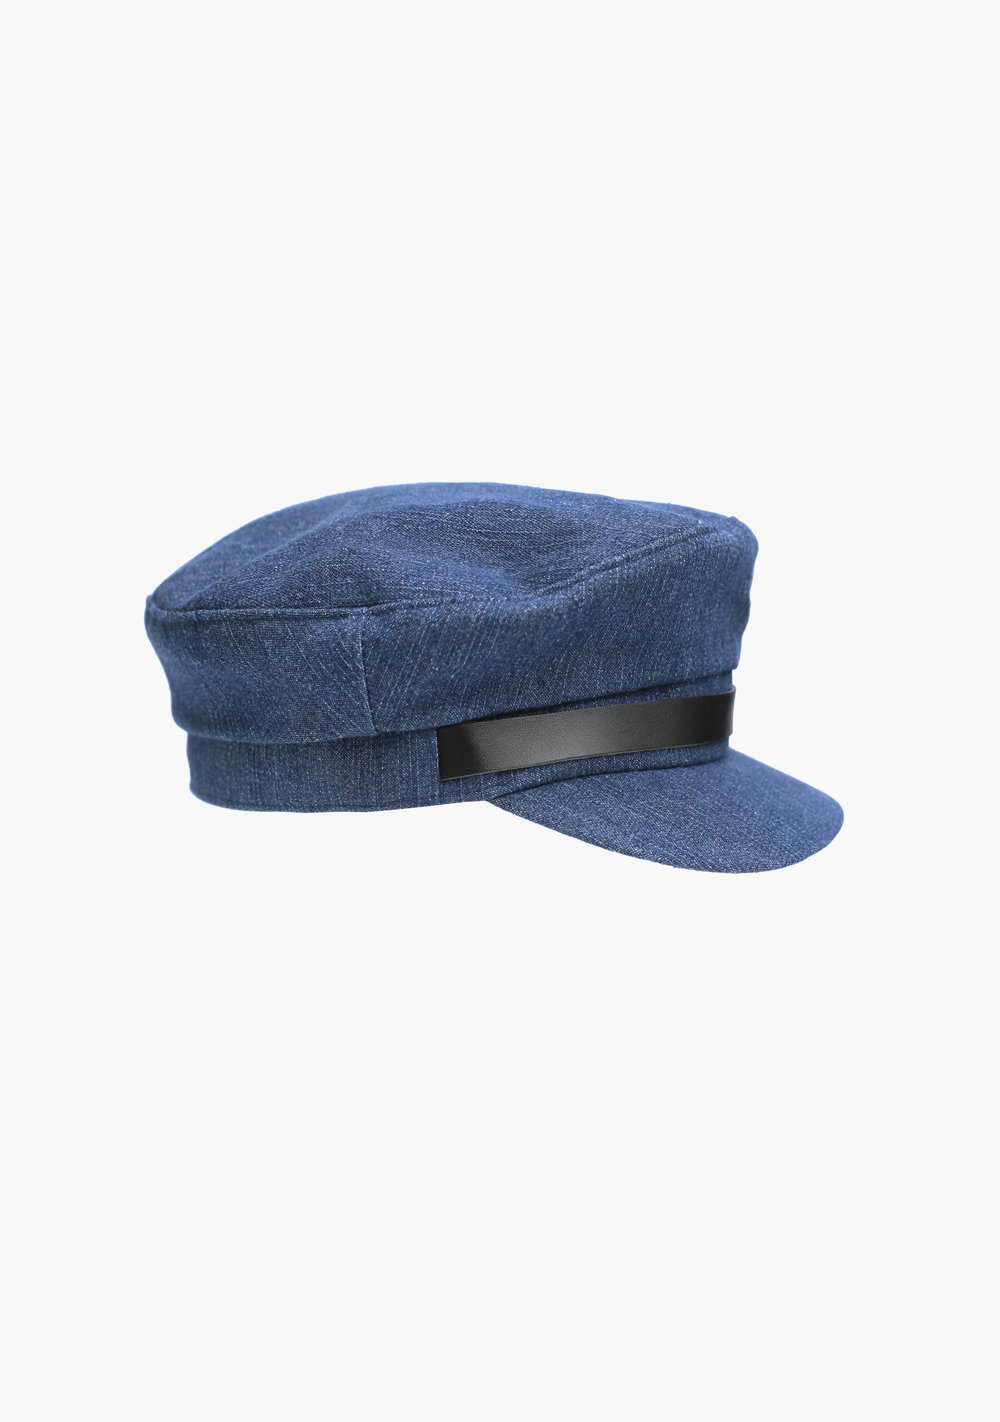 66thelabel__blue_denim_cap.jpg